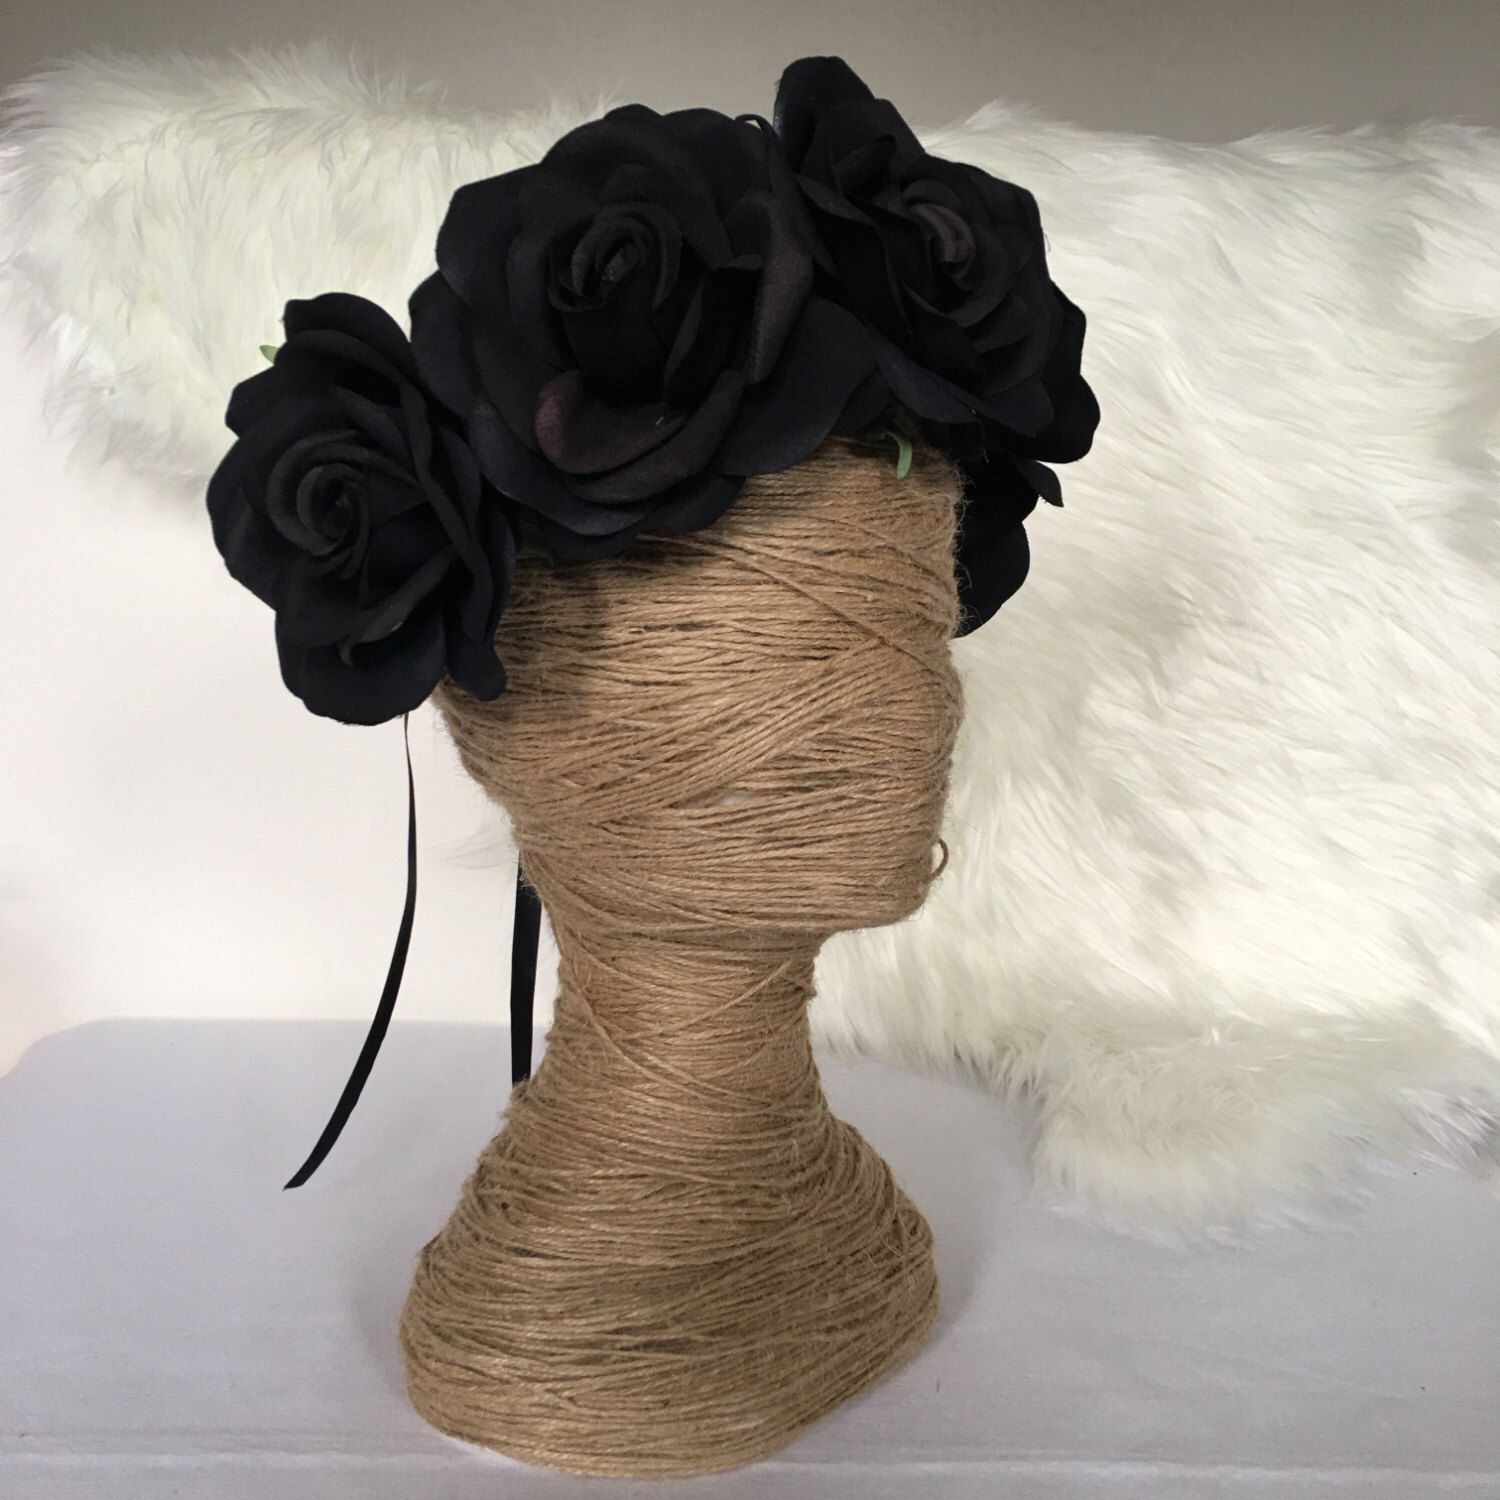 Black rose artificial flower crown floral wreath hair flowers black rose artificial flower crown floral wreath hair flowers fake flower silk fascinator headband by fauxfloralco on etsy izmirmasajfo